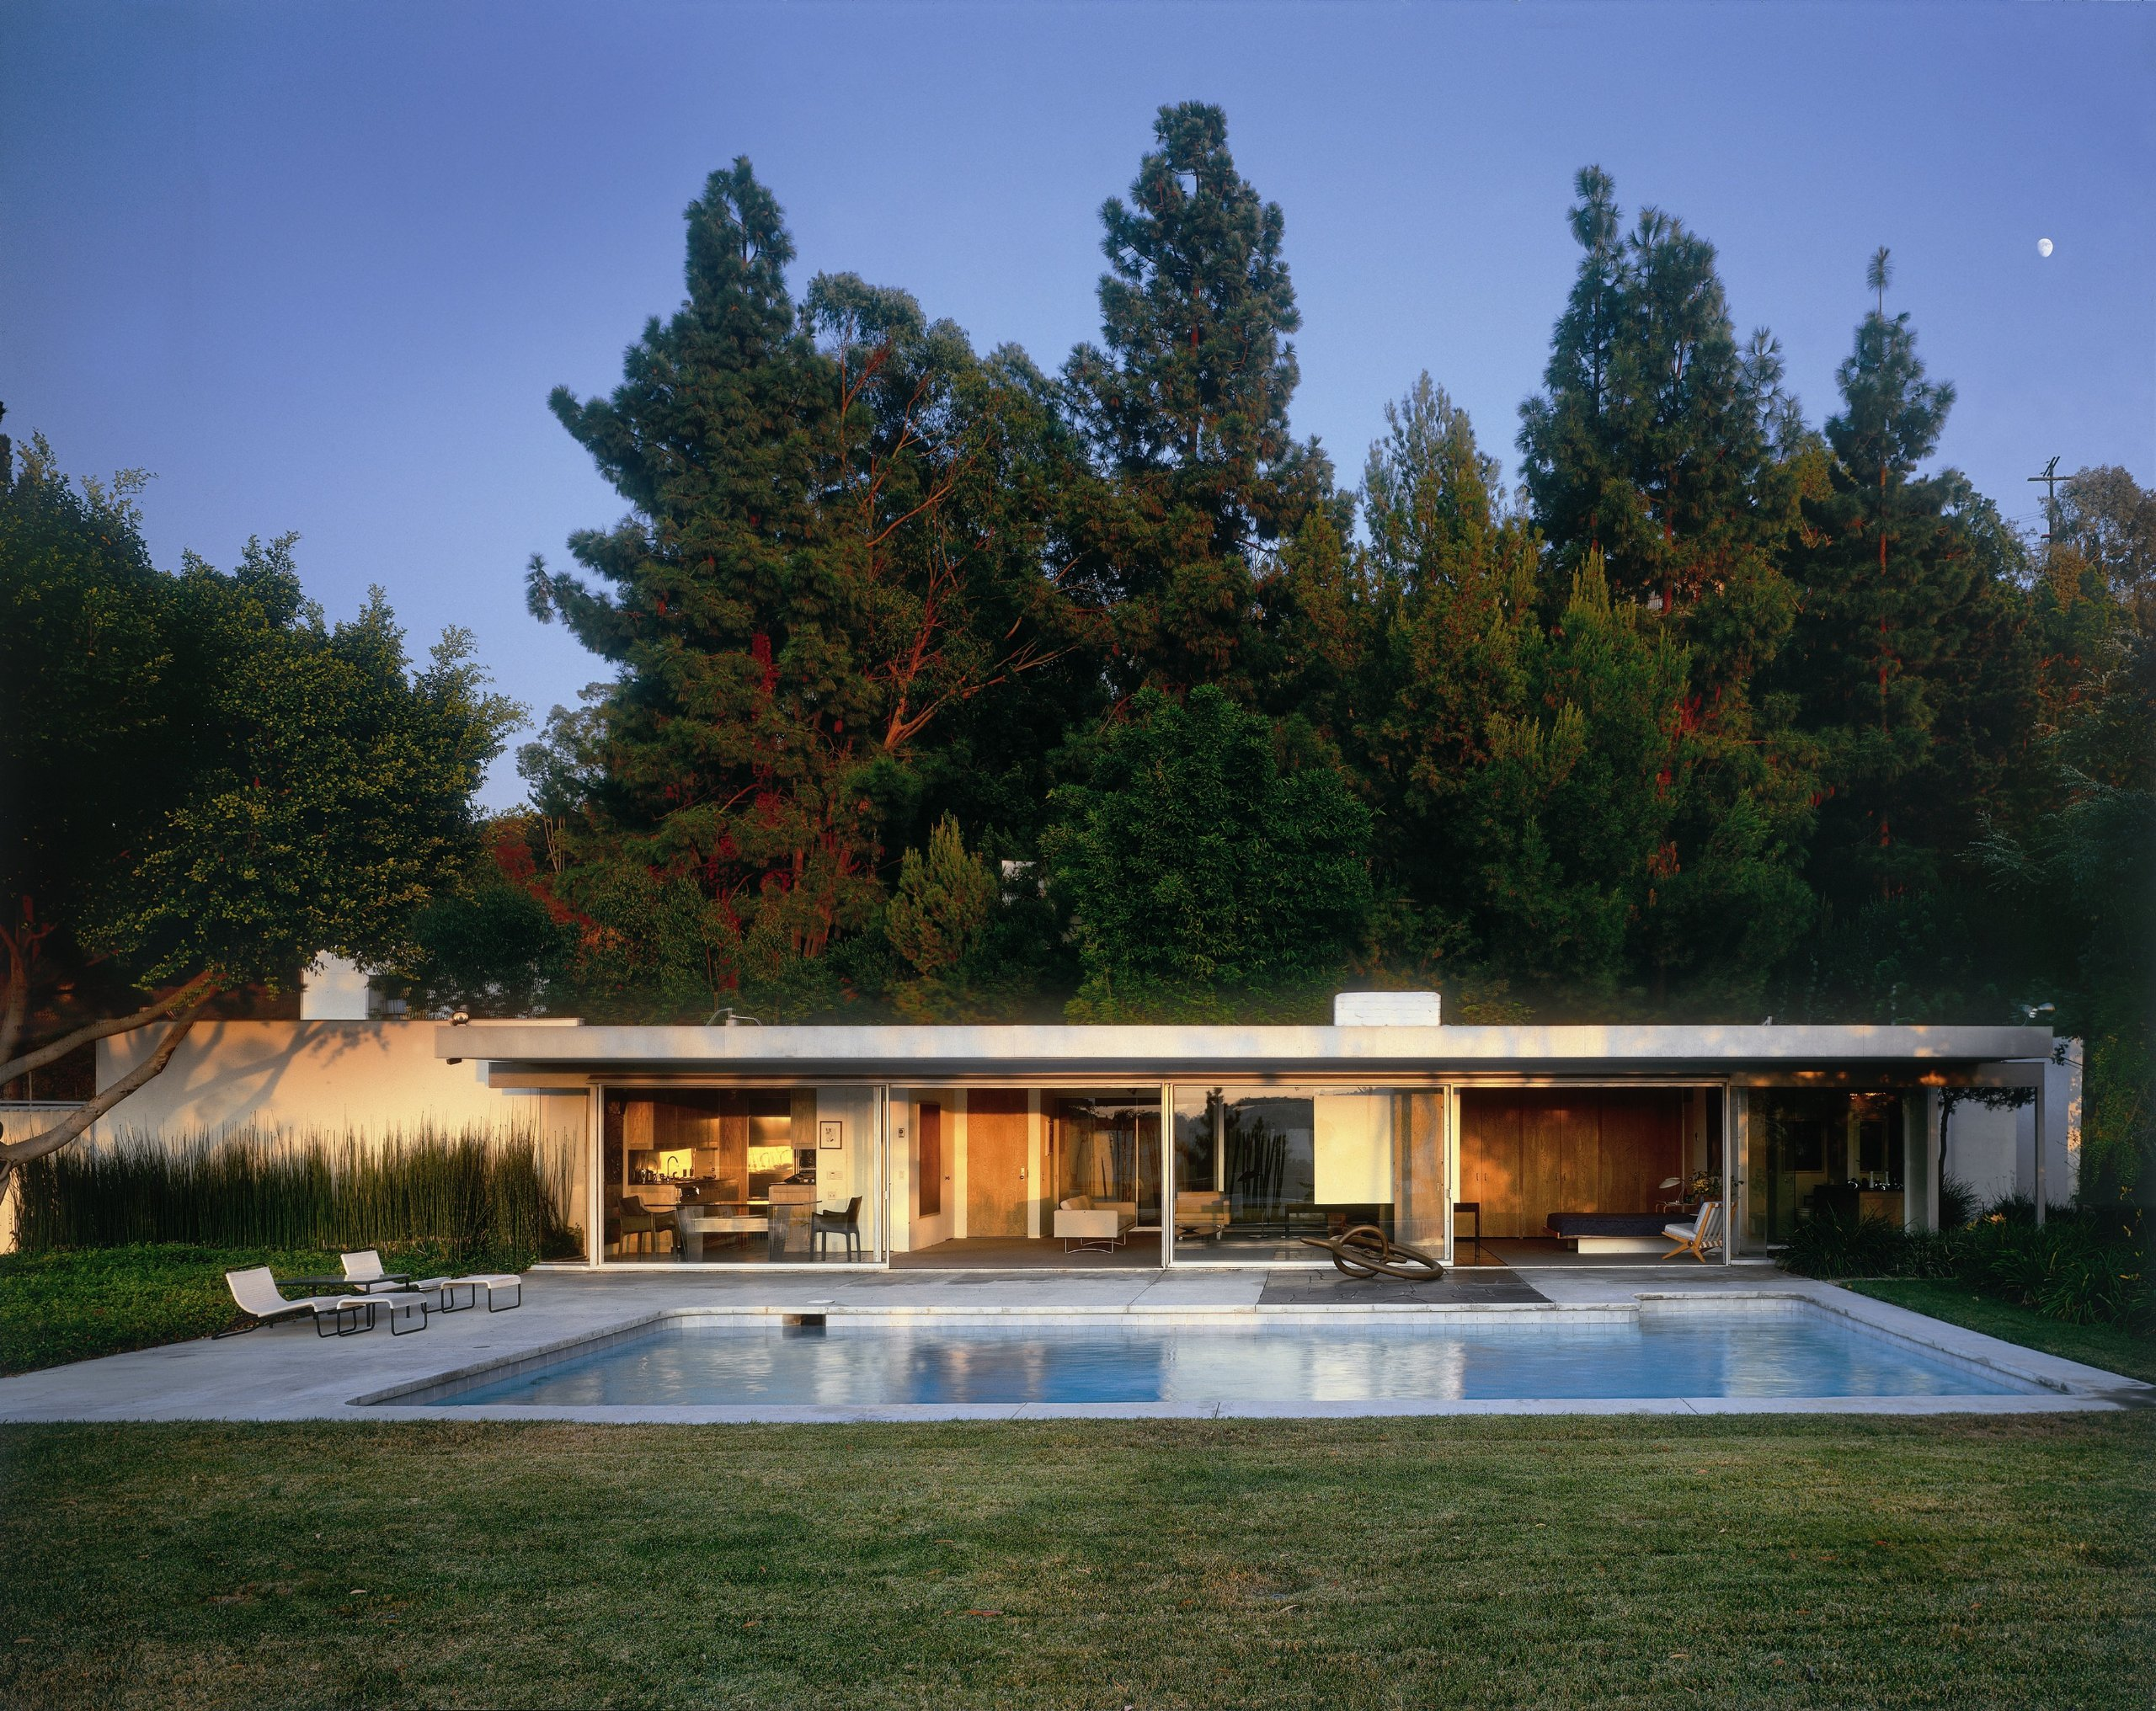 Case Study Houses Taschen   th Anniversary Special Editions     Pinterest Case Study House               Inverness Rd  Thousand Oaks  Buff  amp